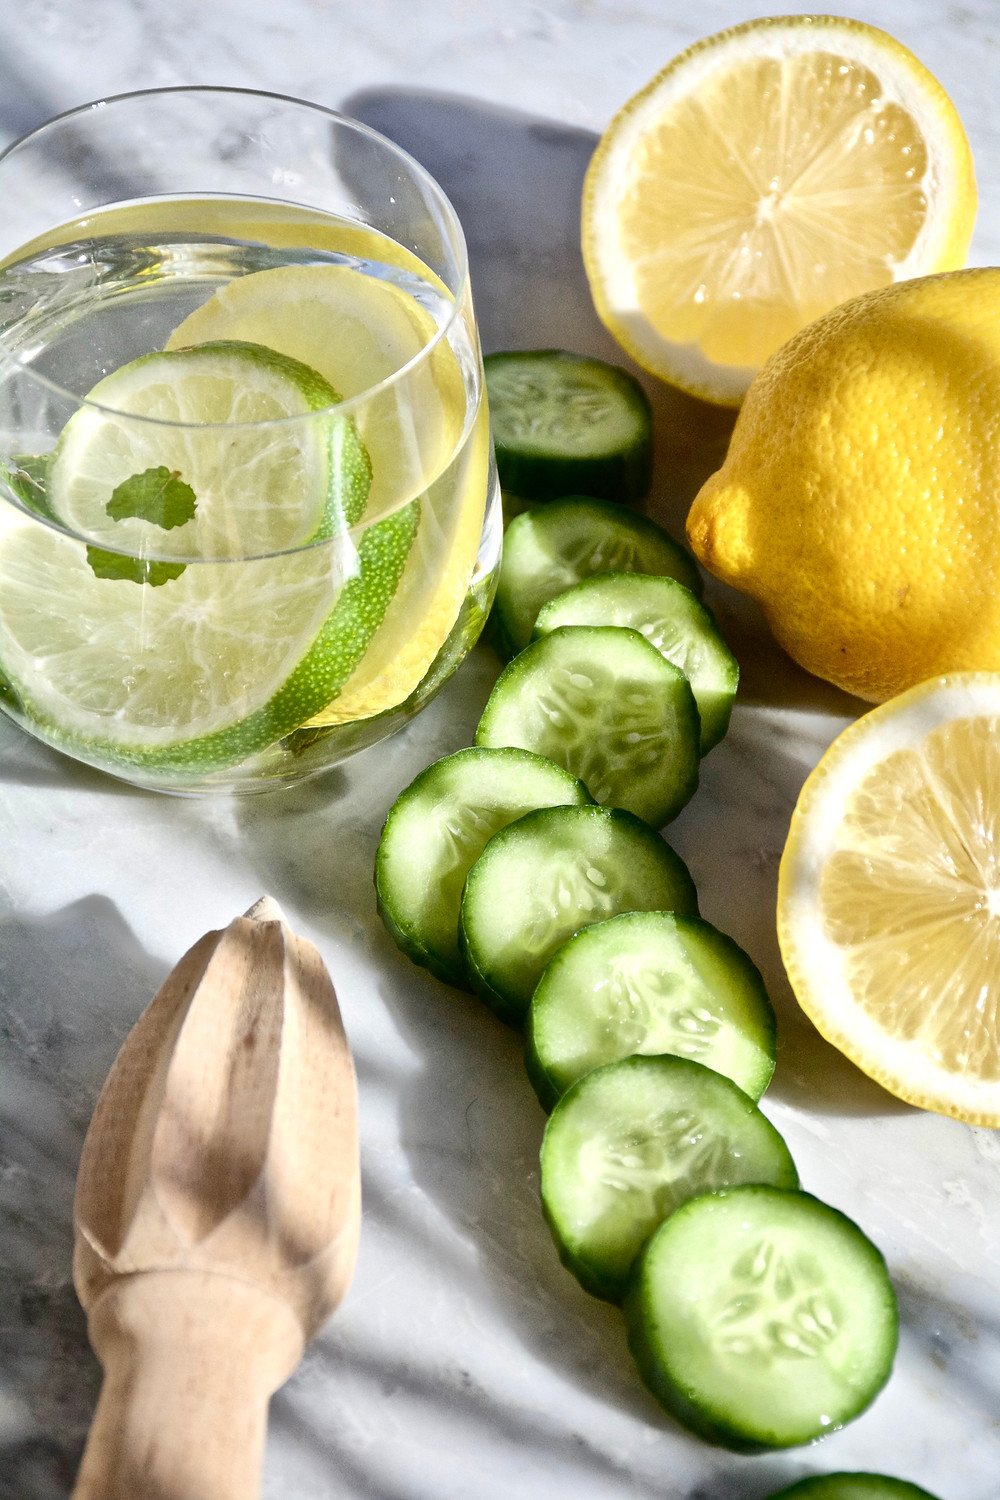 The Beauty Benefits of Nutrients, Clean Food, Beauty Food, Food for Beauty, Clean Eating, The Wellness Edit, The Beauty Edit, The Golden Edition, Health, Glass of Water with Lemon, Lemon Water, Cucumber, Lemons, citrus, Detox Water, Mint Water, Water Recipe